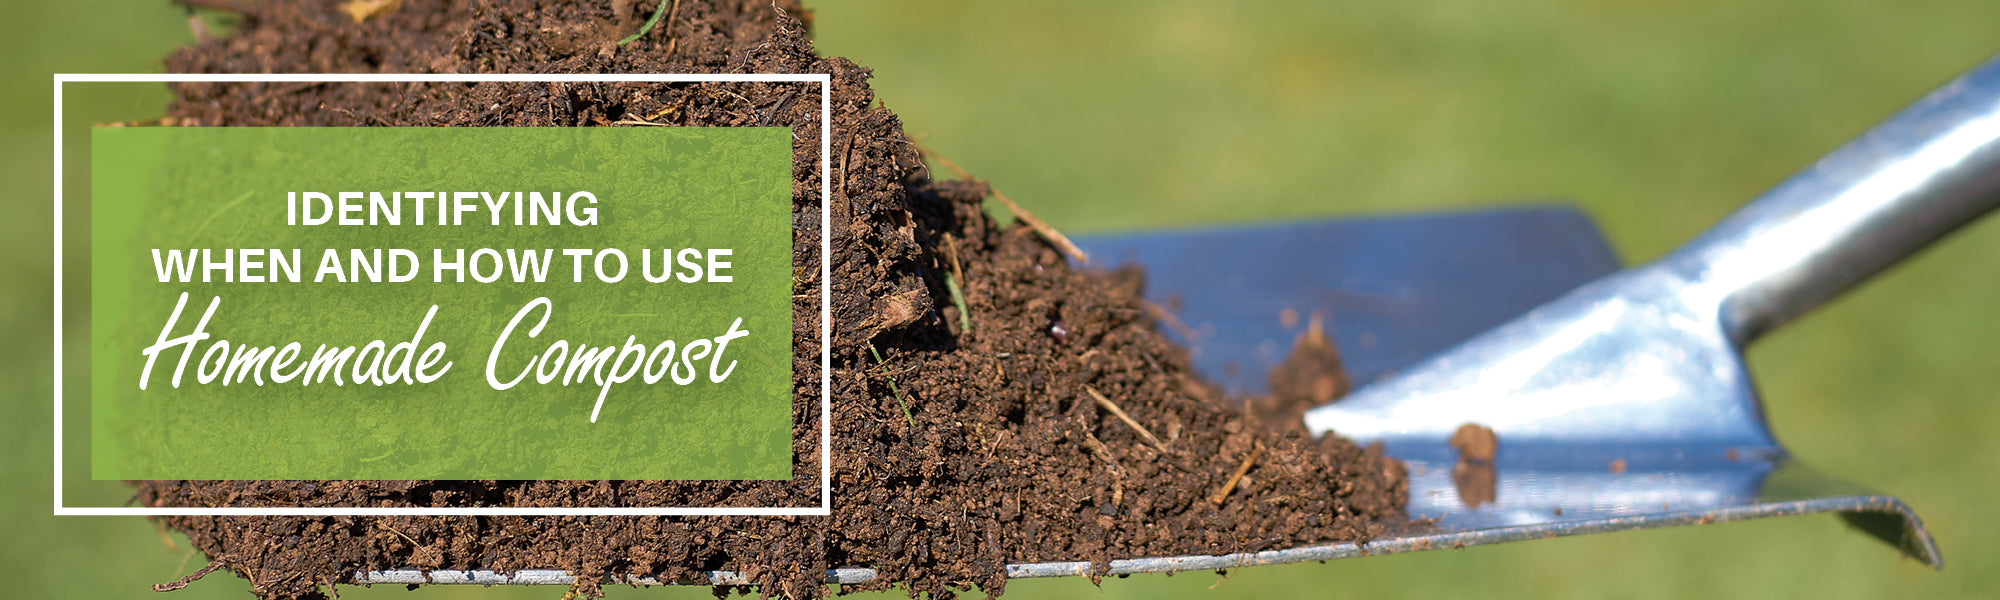 Identifying When and How to Use Homemade Compost